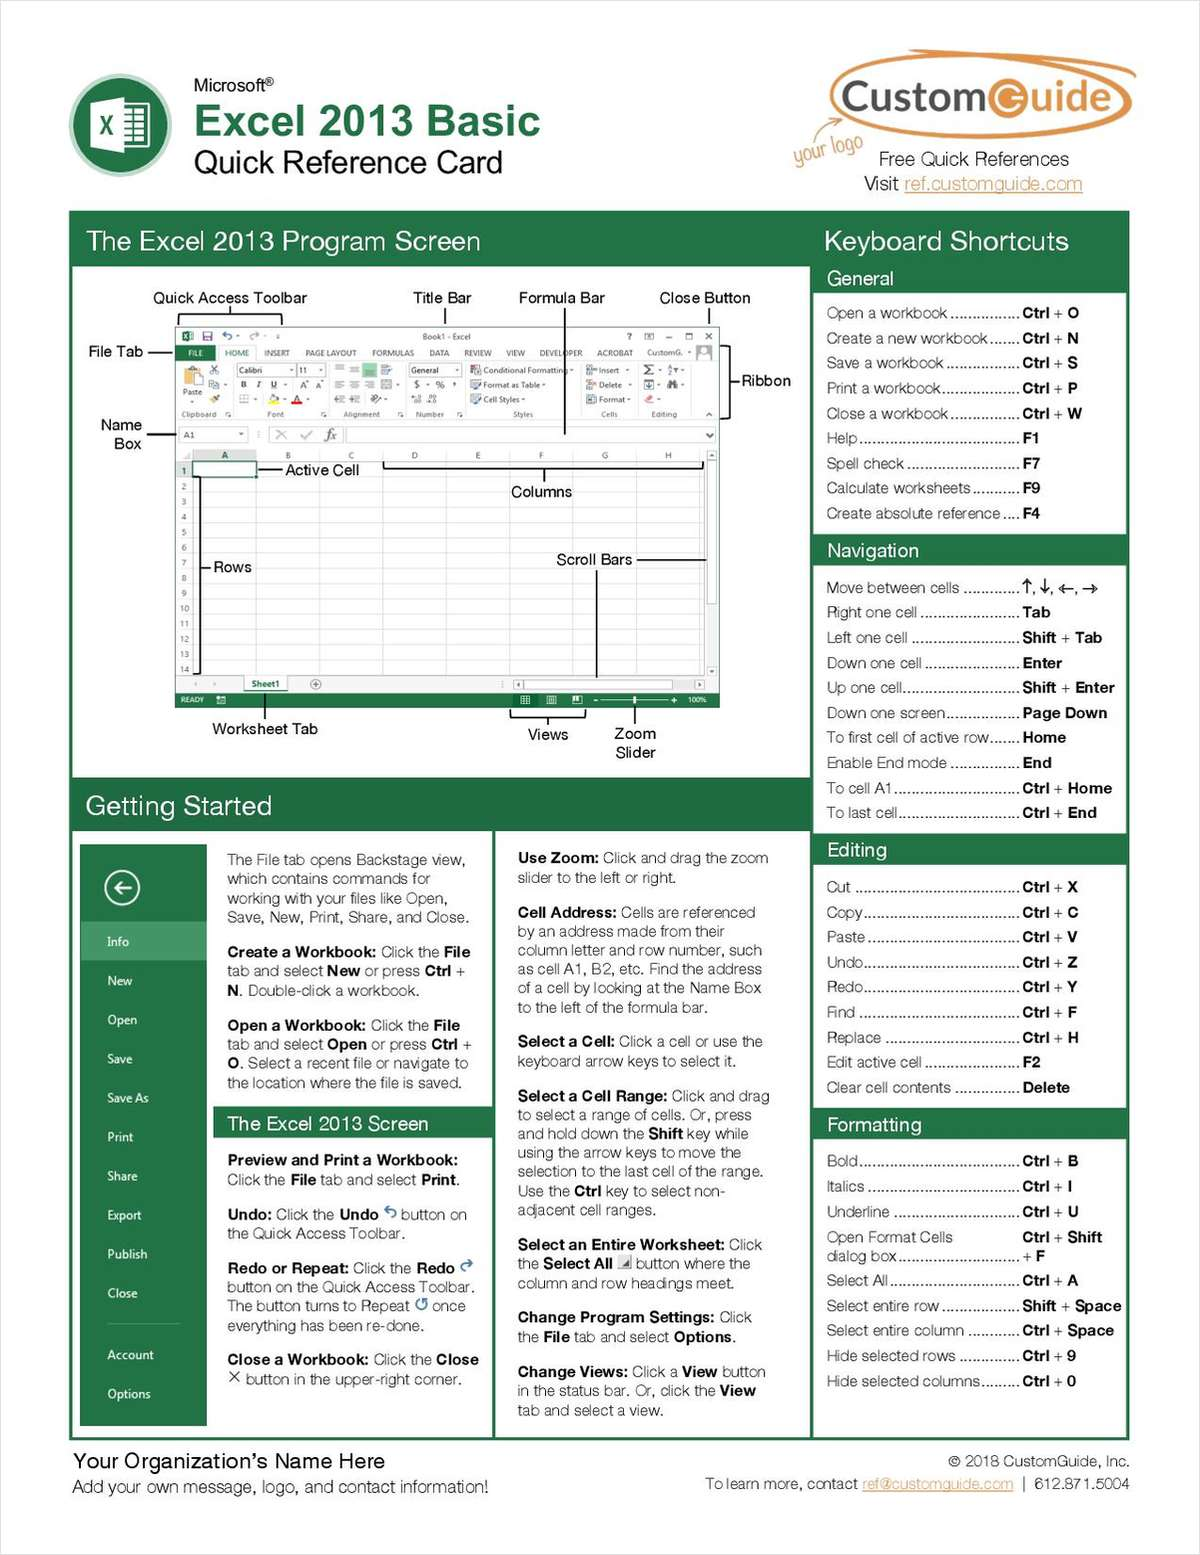 Microsoft Excel 2013 Basic -- Quick Reference Guide